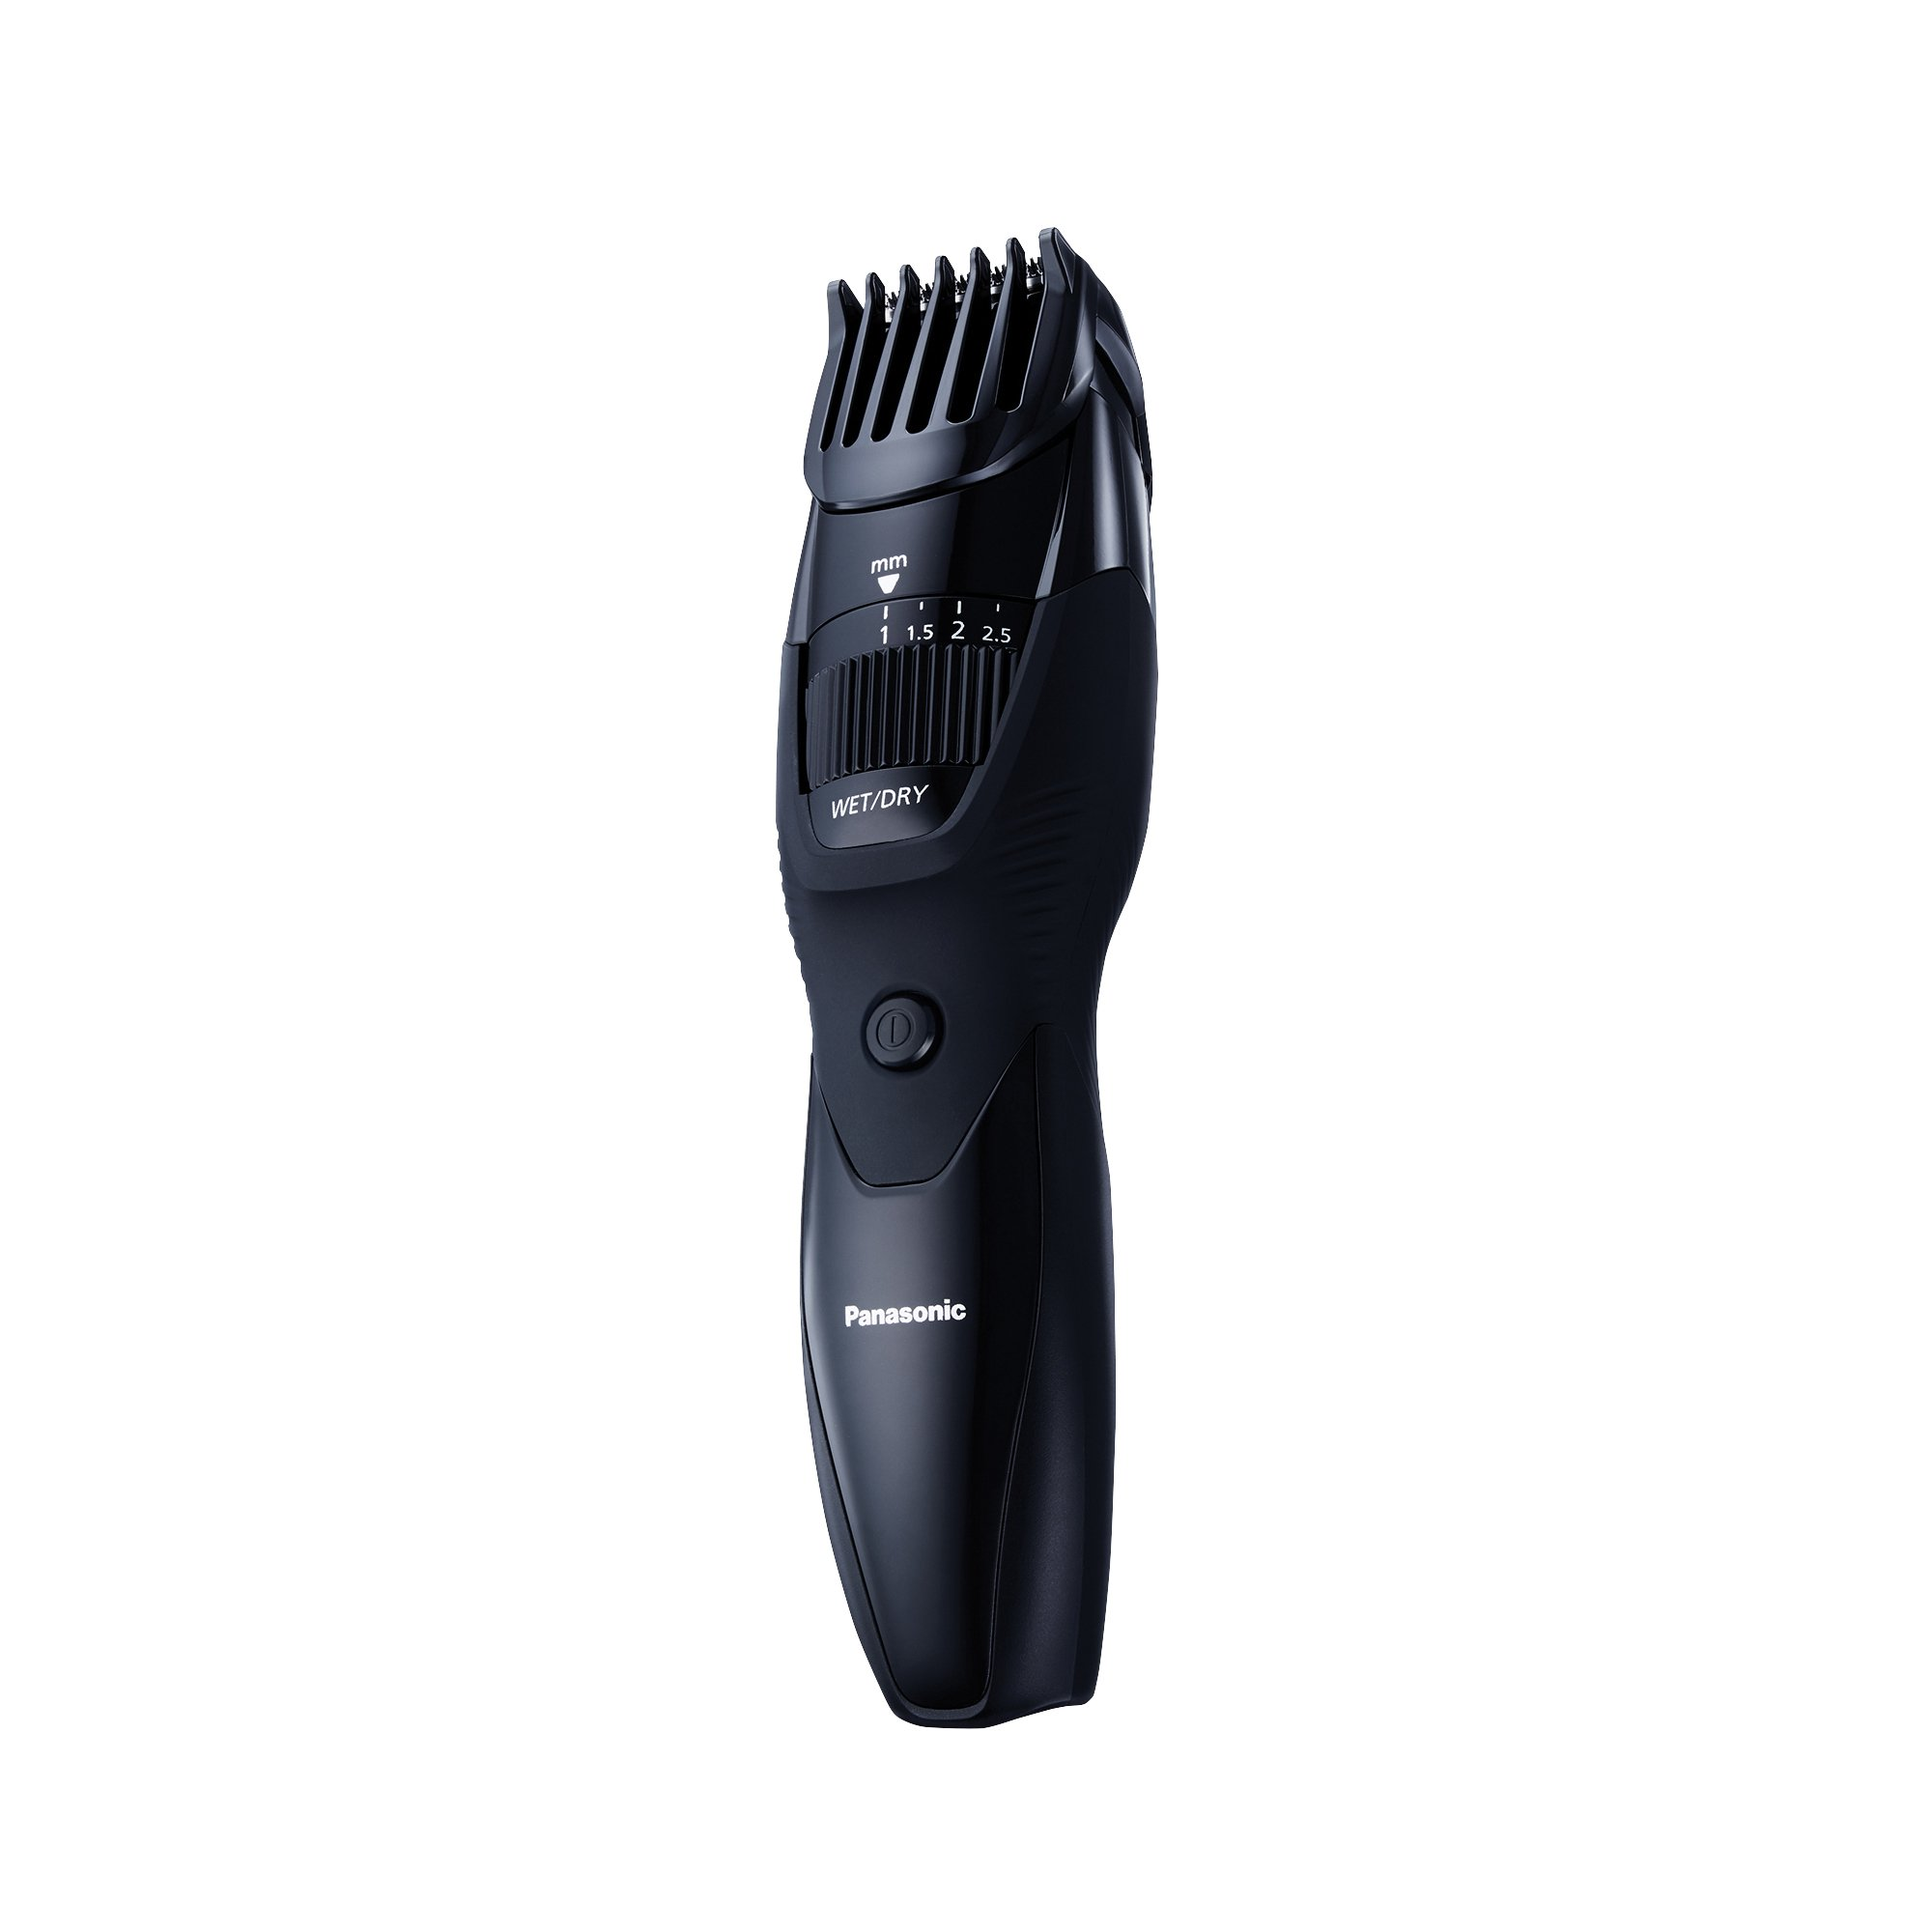 Panasonic Men's Precision Wet Dry Beard and Hair Trimmer